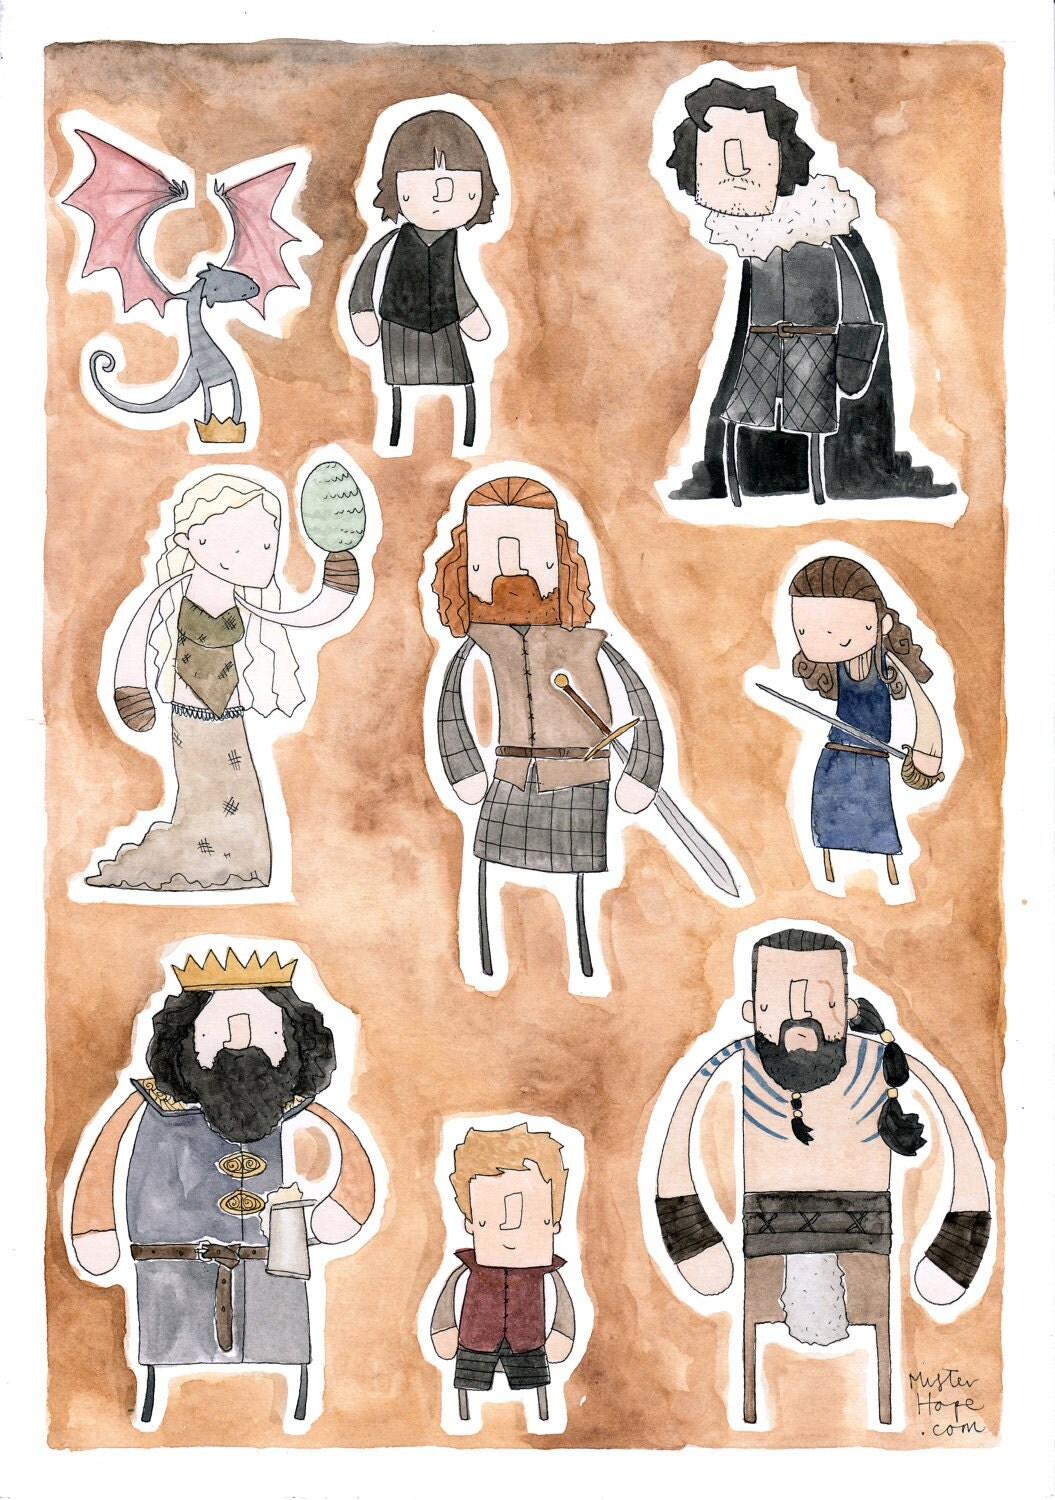 Game of Thrones in watercolor